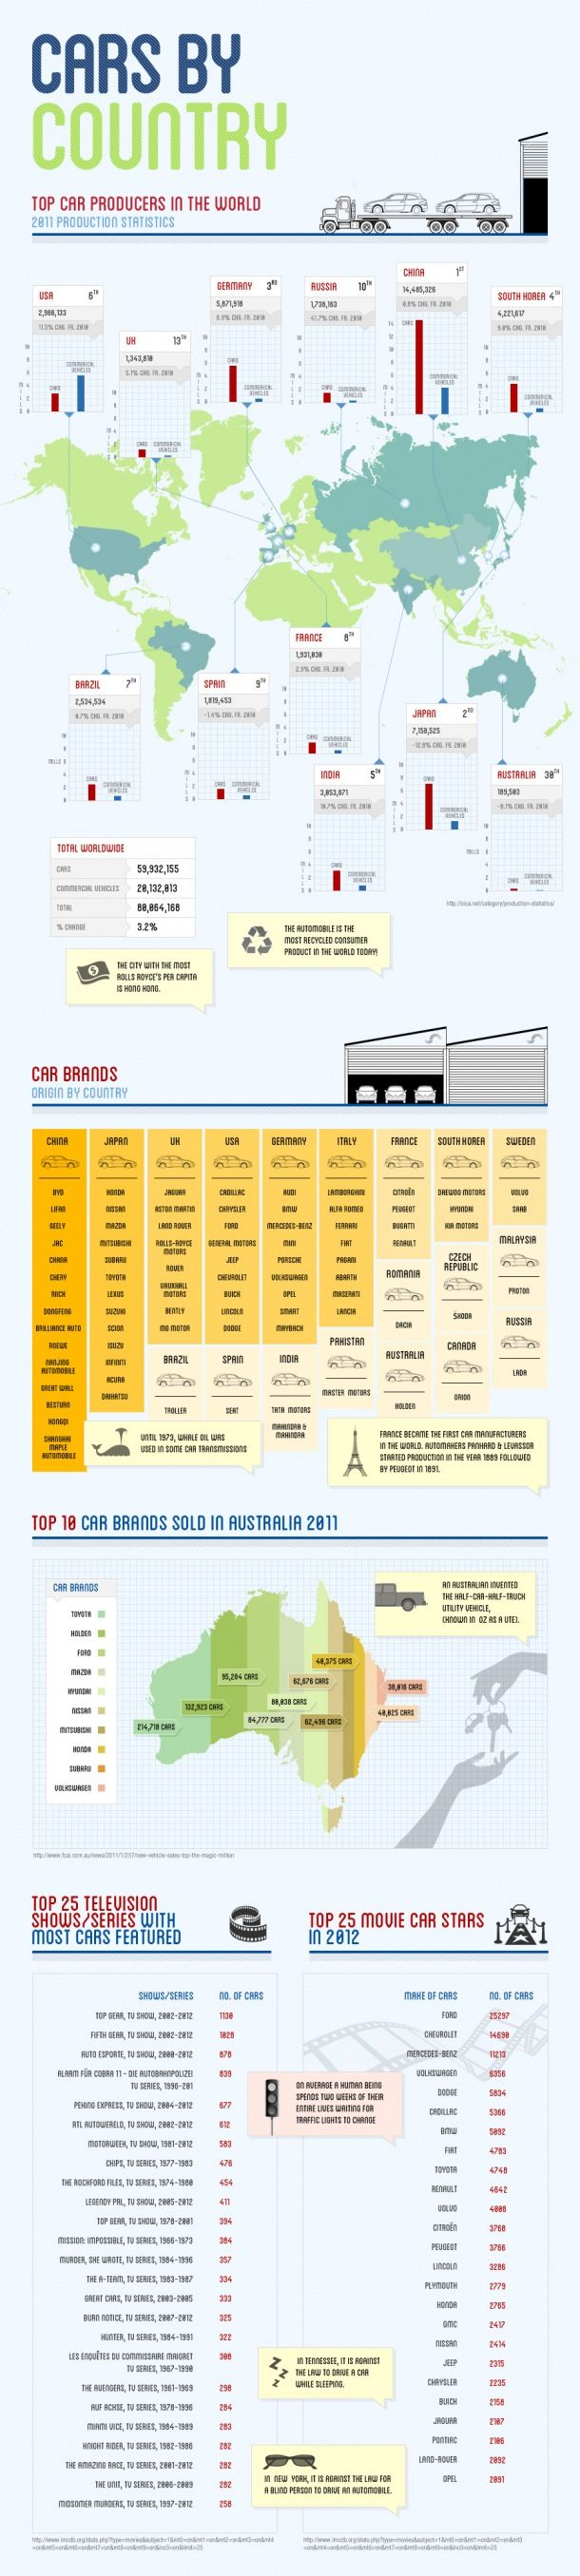 An infographic look at car production around the world car producers car brands and more infographic by allianz australia car insurance